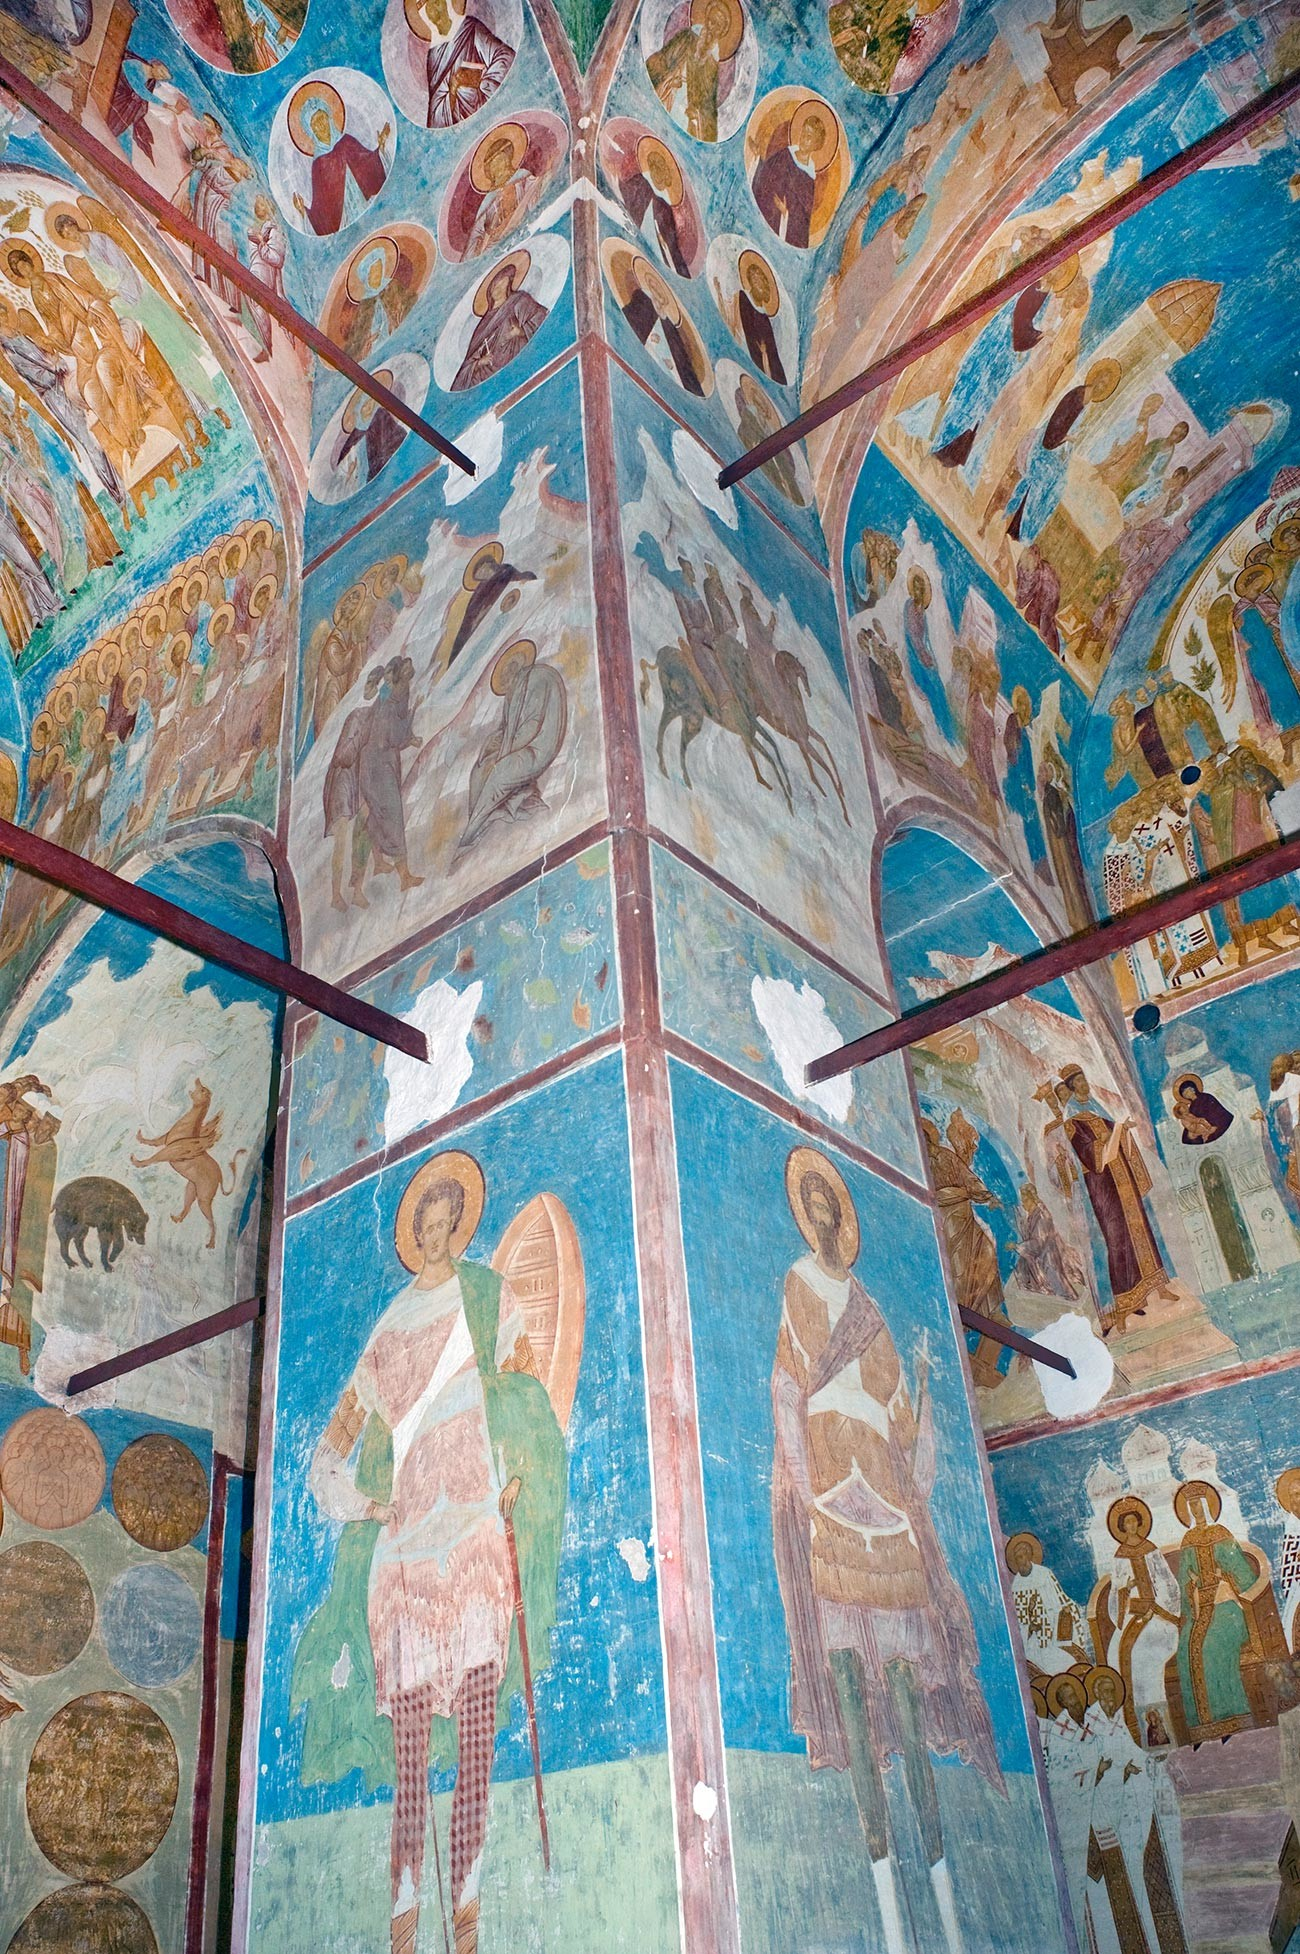 Cathedral of Nativity. Northwest pier with frescoes of St. Demetrius (left) & St. Theodore. Upper level: Three Wise Men following the Star. June 1, 2014